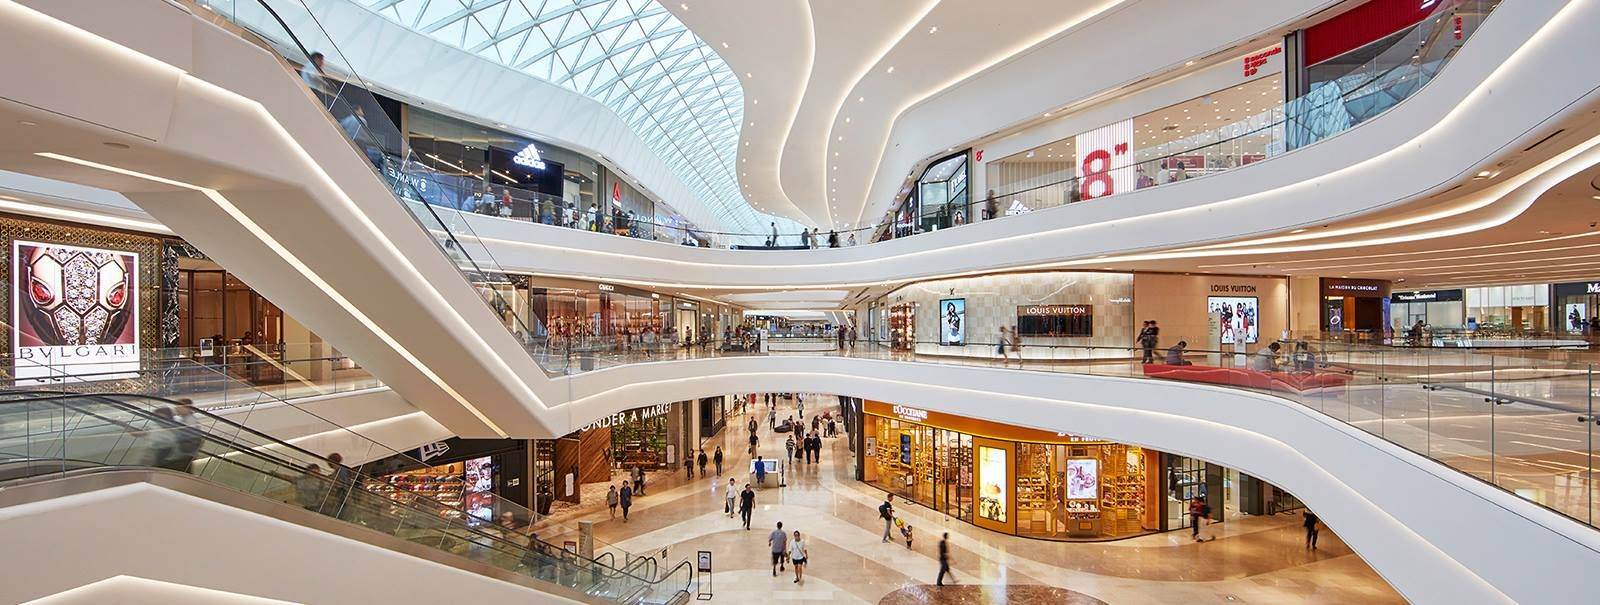 bb703a12c8 ... Hanam Shopping Centre  lighting  retail  Retaillighting  Intensitylight   Intensity  LED  modern  Design  Track  Spots  supermarket  store  spar   profile